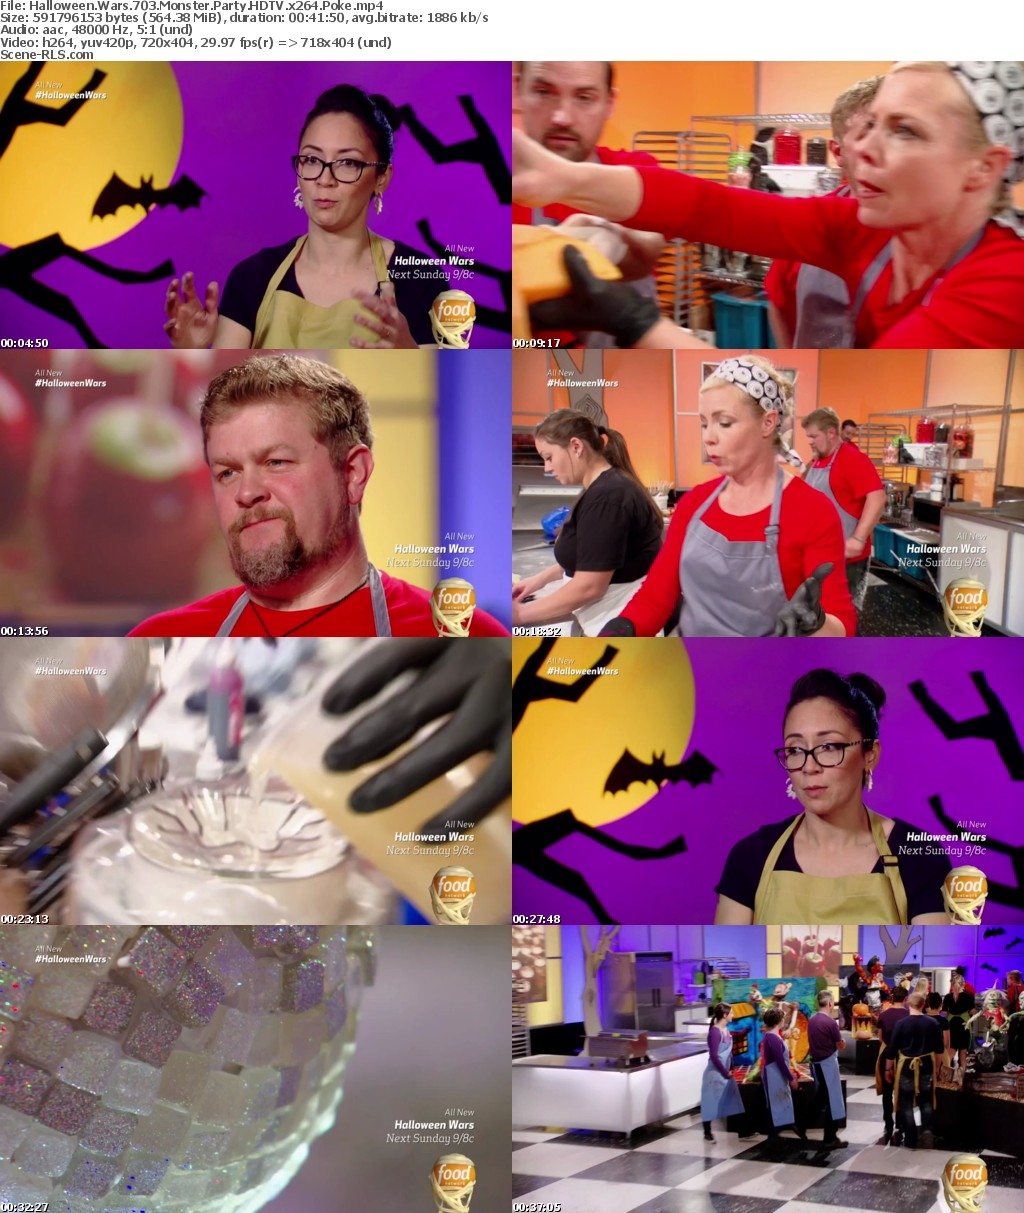 Halloween Wars S07E03 Monster Party HDTV x264-NY2 - Scene Release